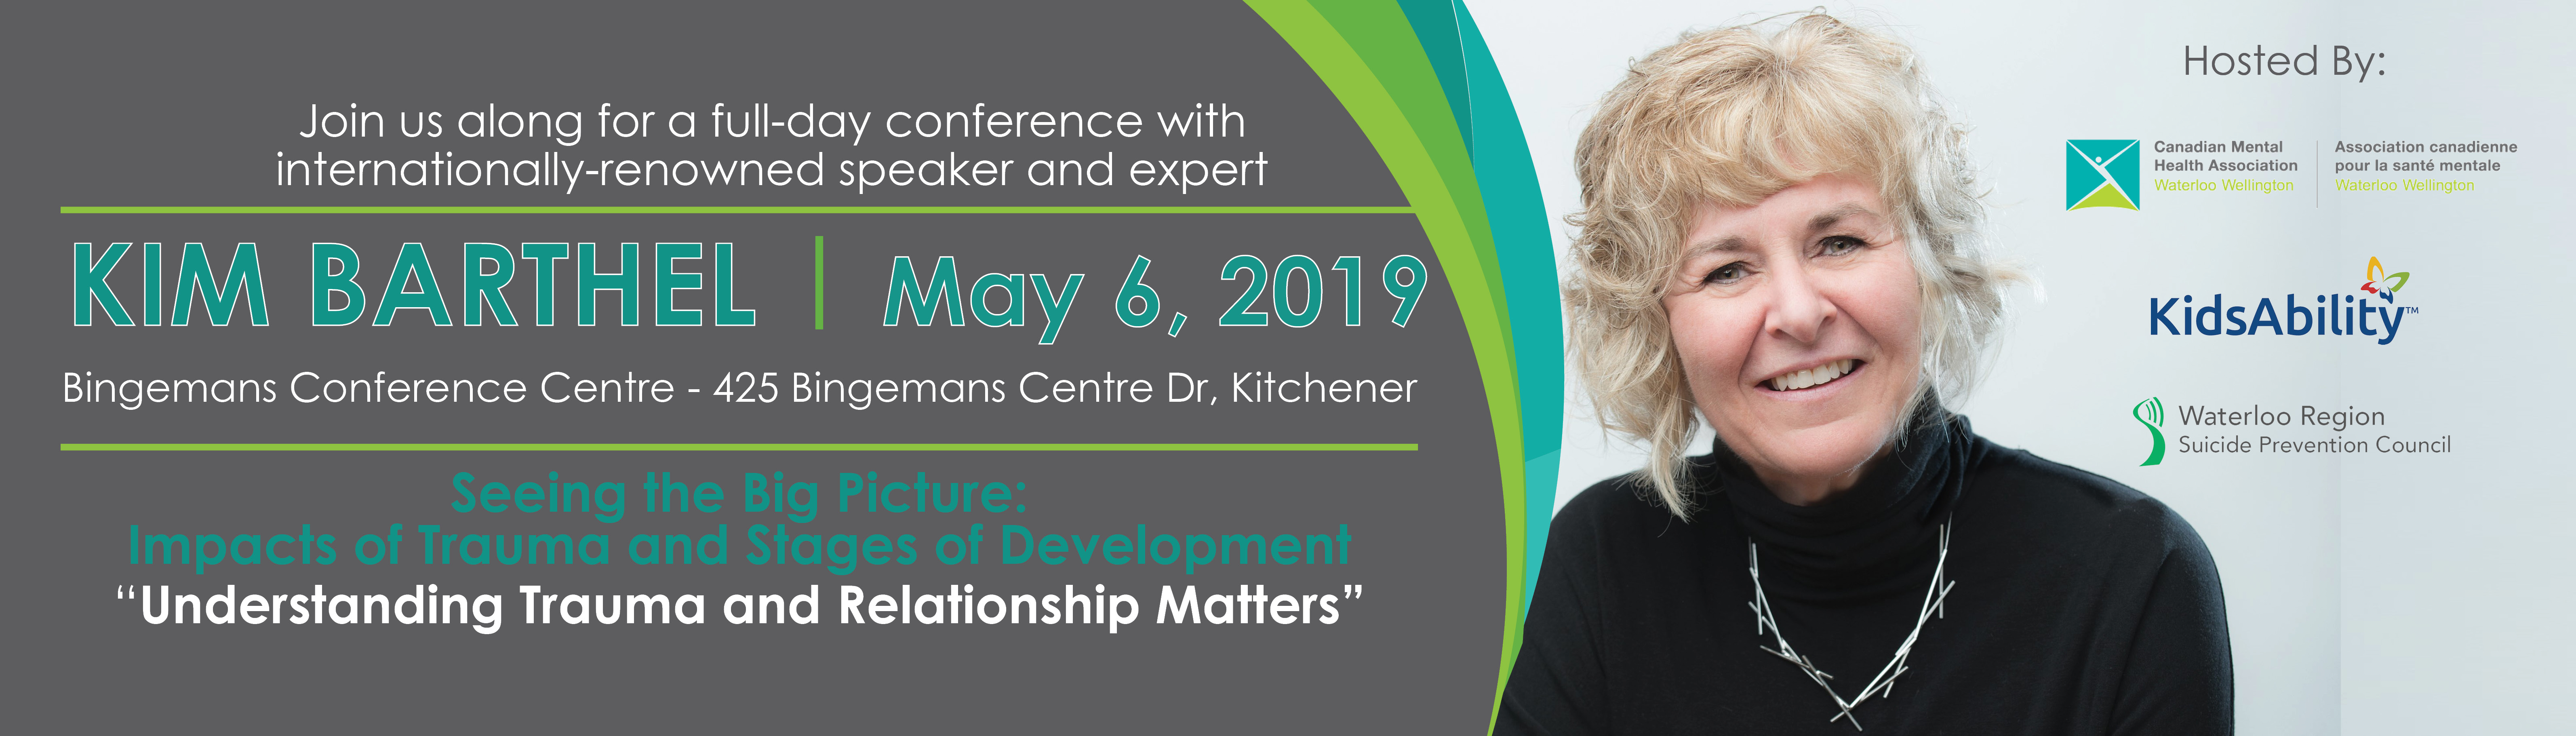 Full-Day Conference with Kim Barthel